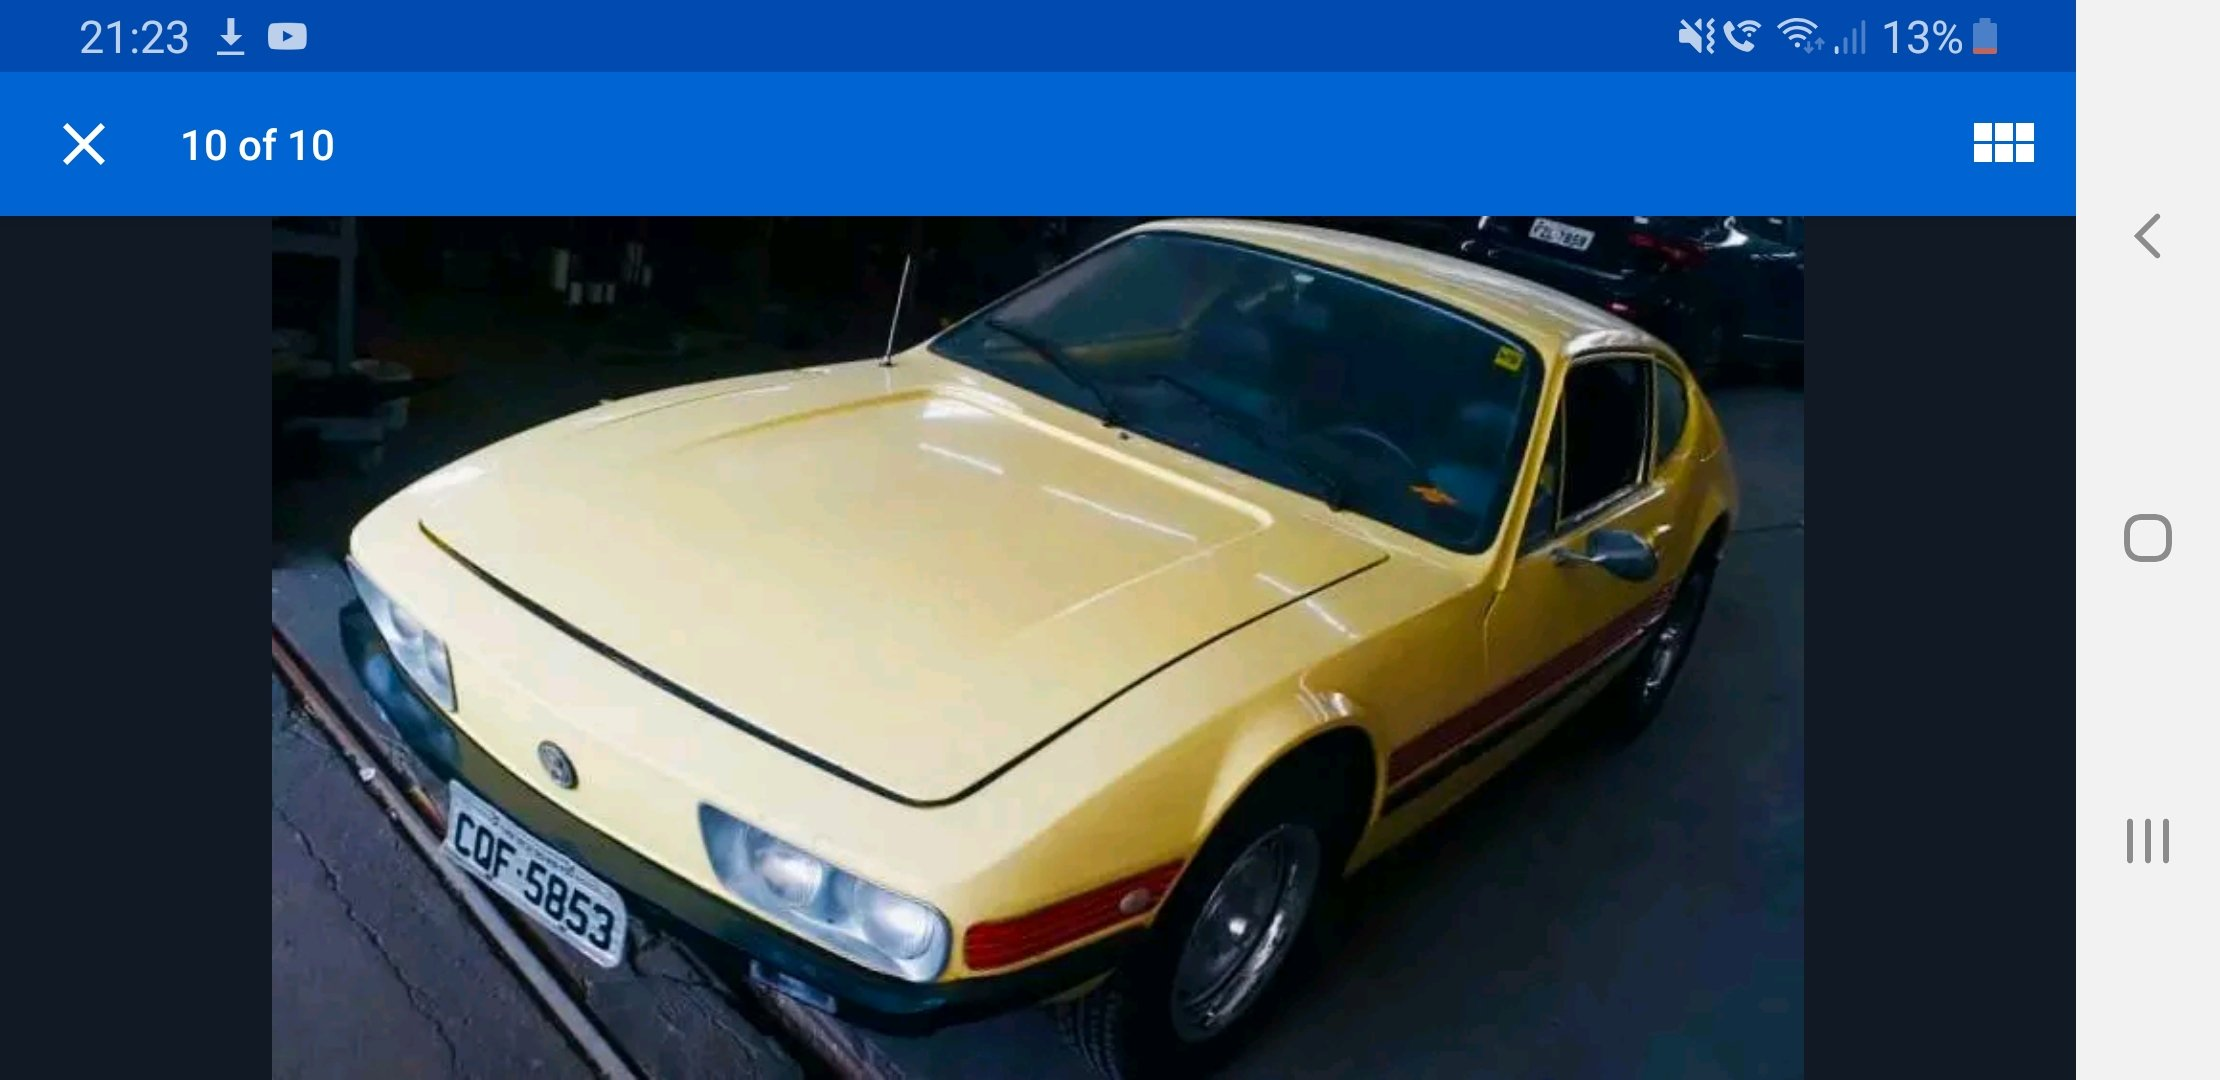 VW SP2   1973 For Sale (picture 6 of 6)